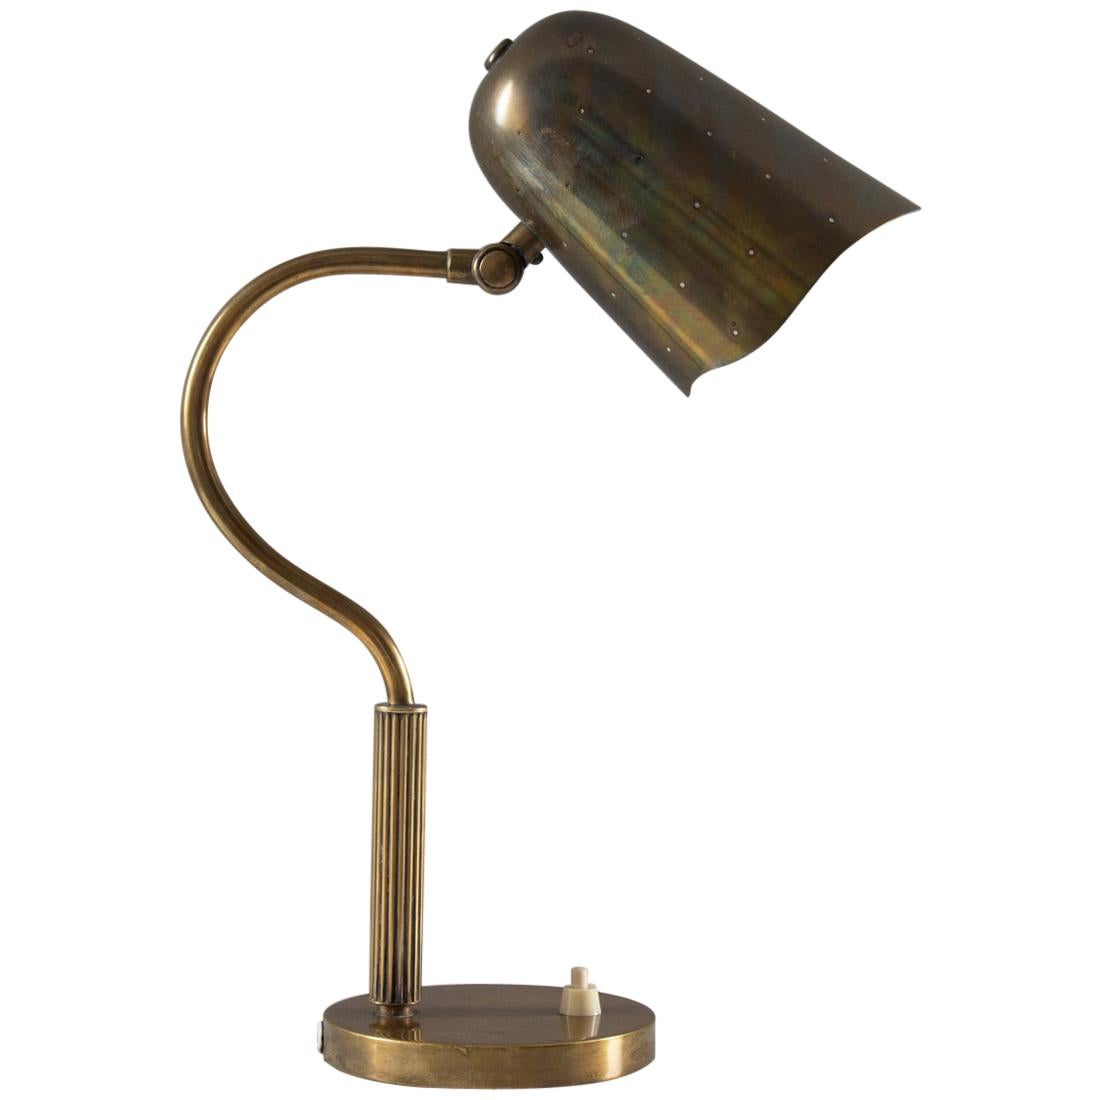 Swedish Midcentury Table Lamp in Perforated Brass